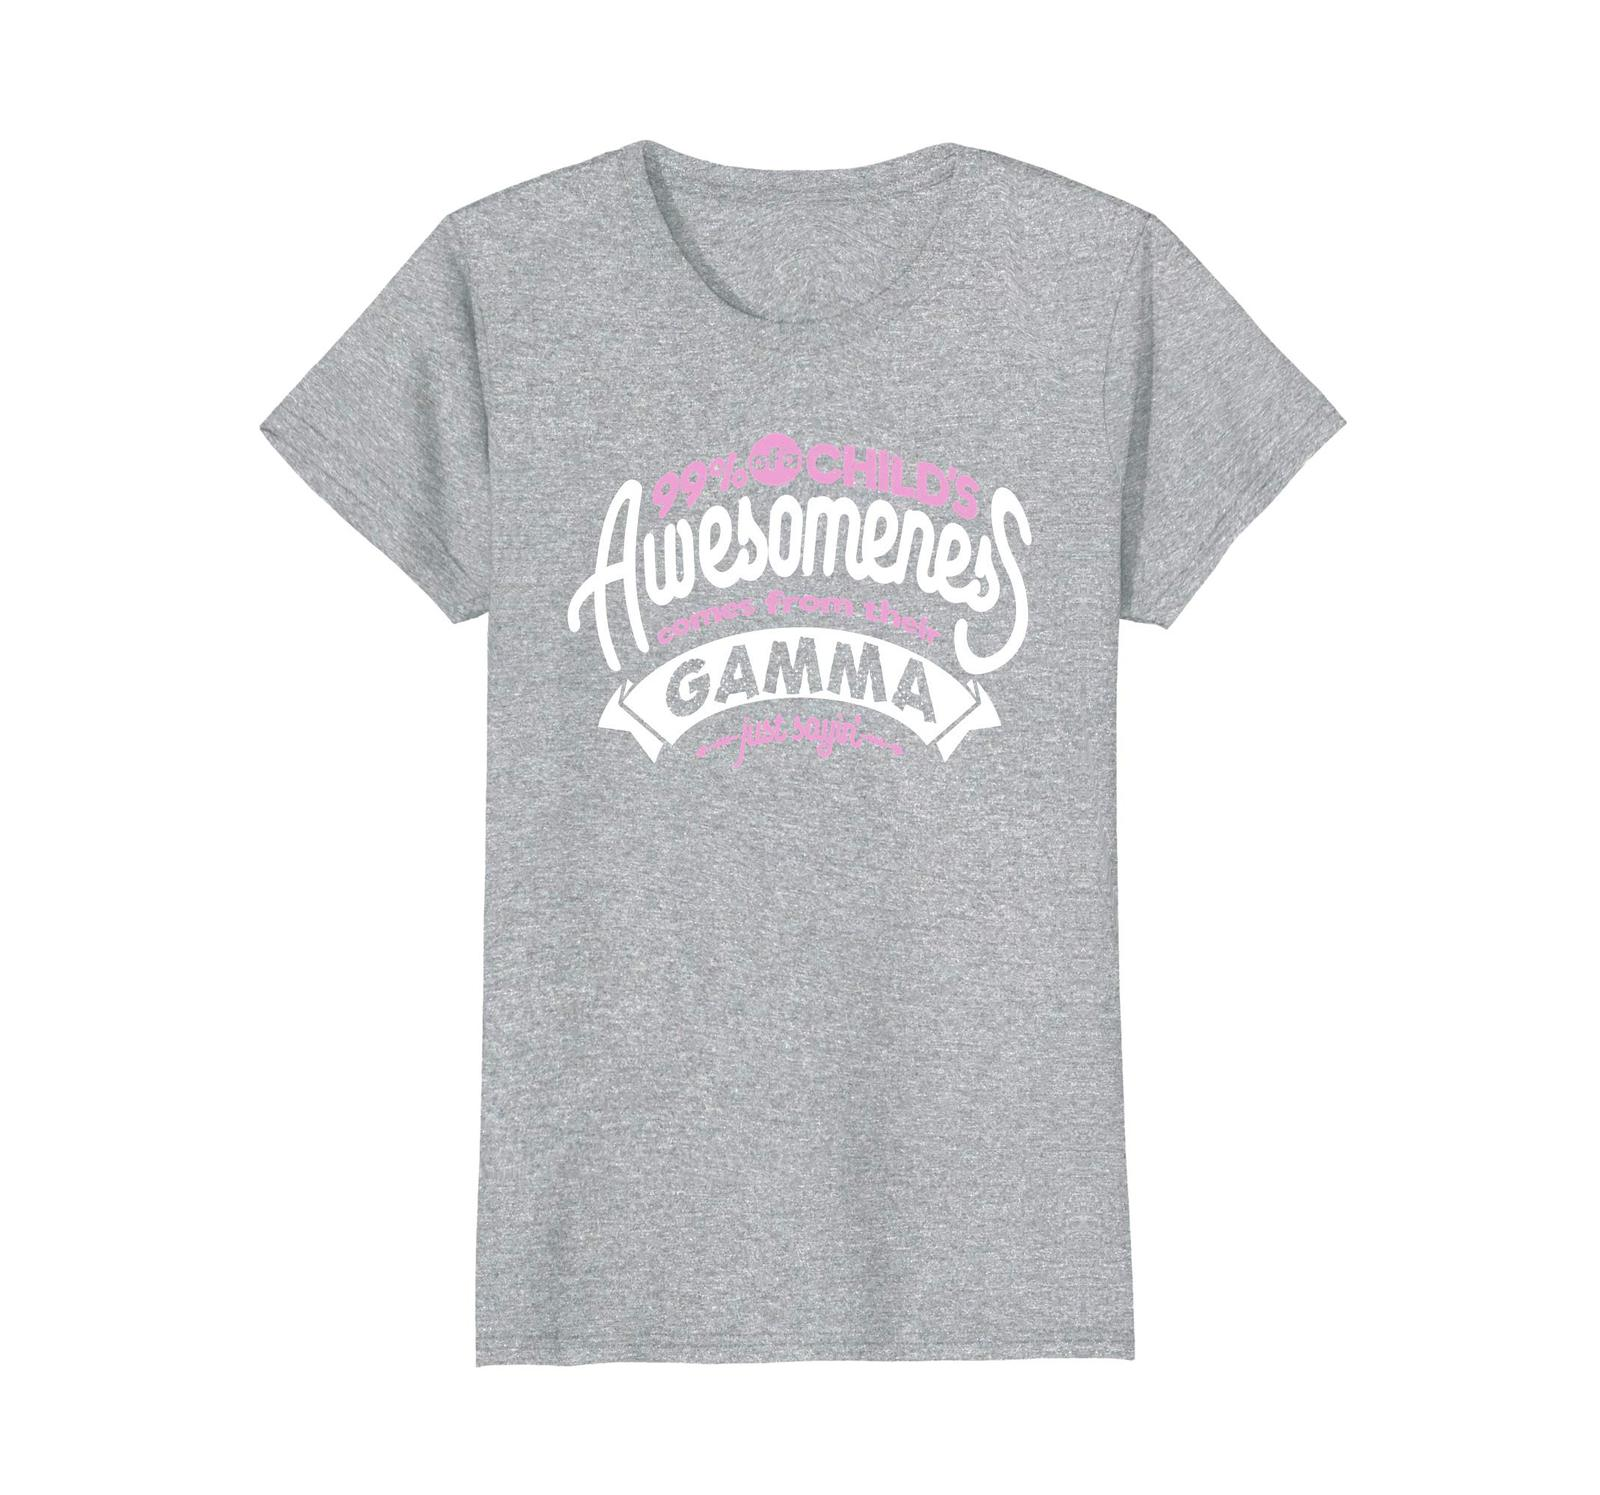 Primary image for Funny Shirts - 99% Of A Child's Awesomeness Comes From Gamma T-shirt Wowen